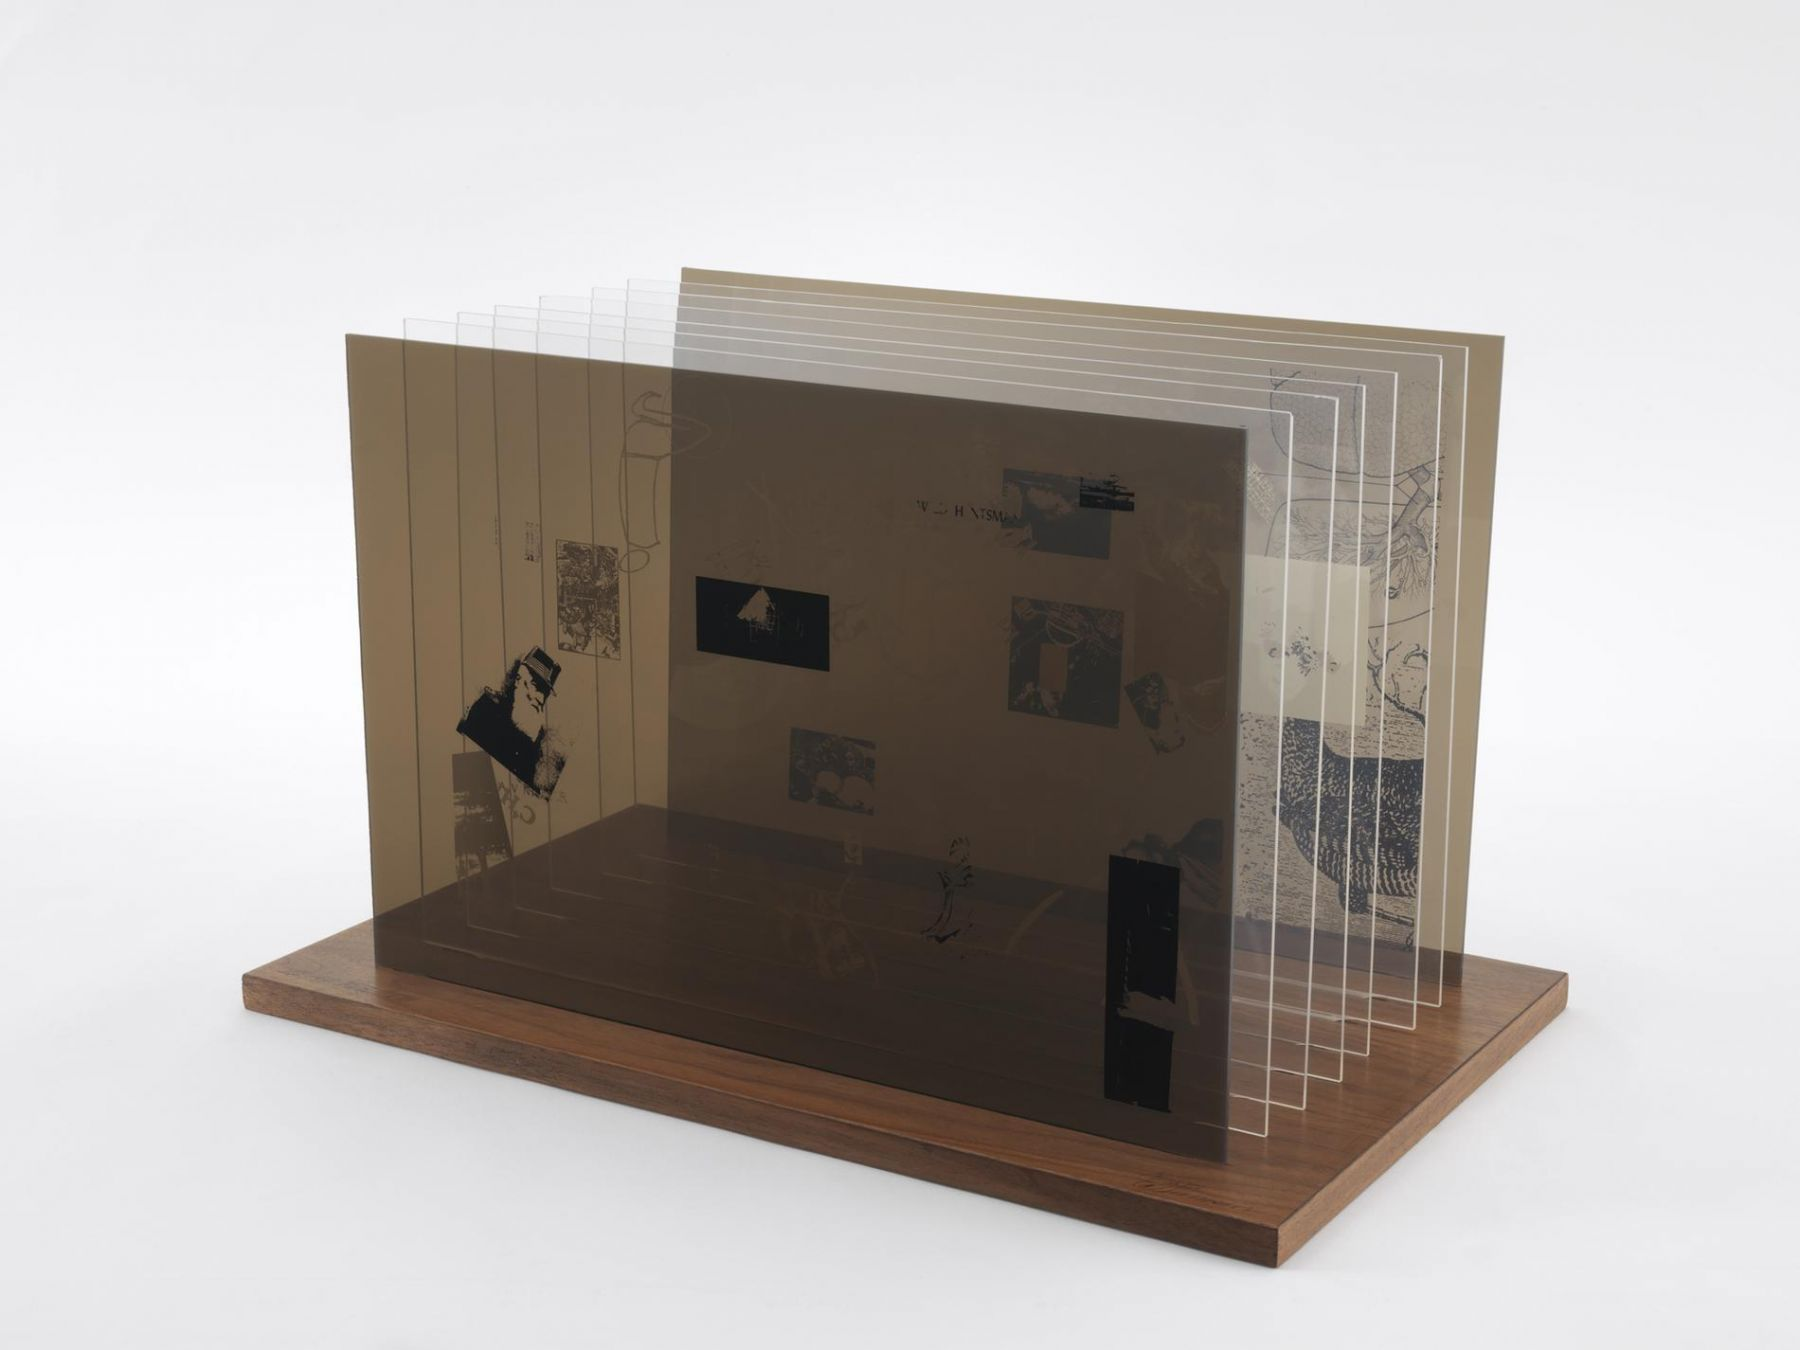 , JOHN CAGENot Wanting to Say Anything About Marcel Plexigram VII,1969Screenprint on eight Plexiglas panels with walnut base14 x 20 x 1/8 in. (35.6 x 50.8 x 0.3 cm)